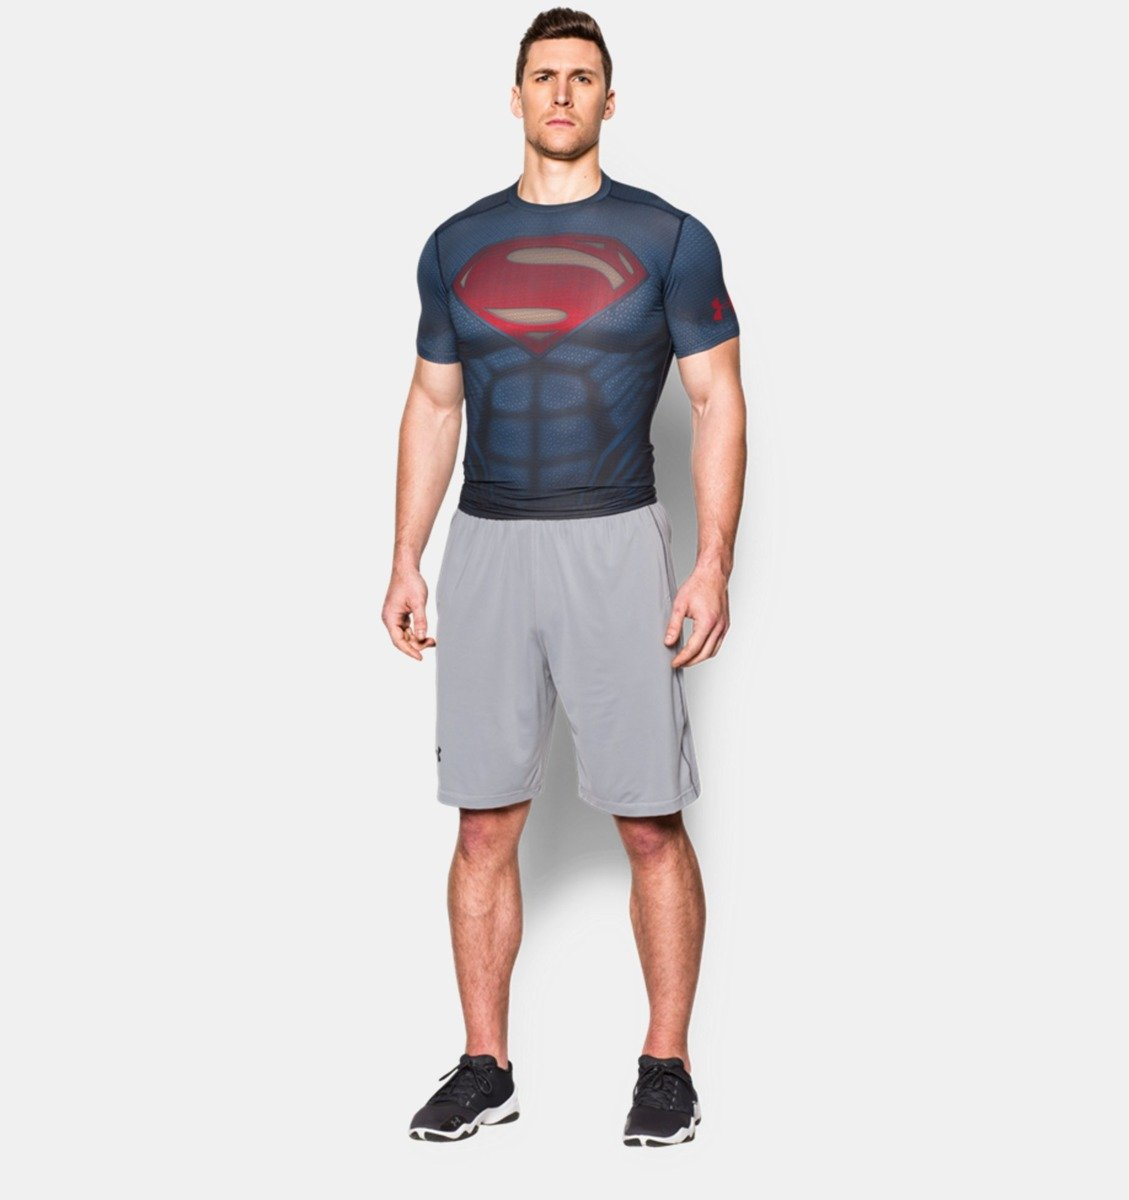 Under armour superman suit ss t shirt 1273689 410 for Cost to tailor a shirt